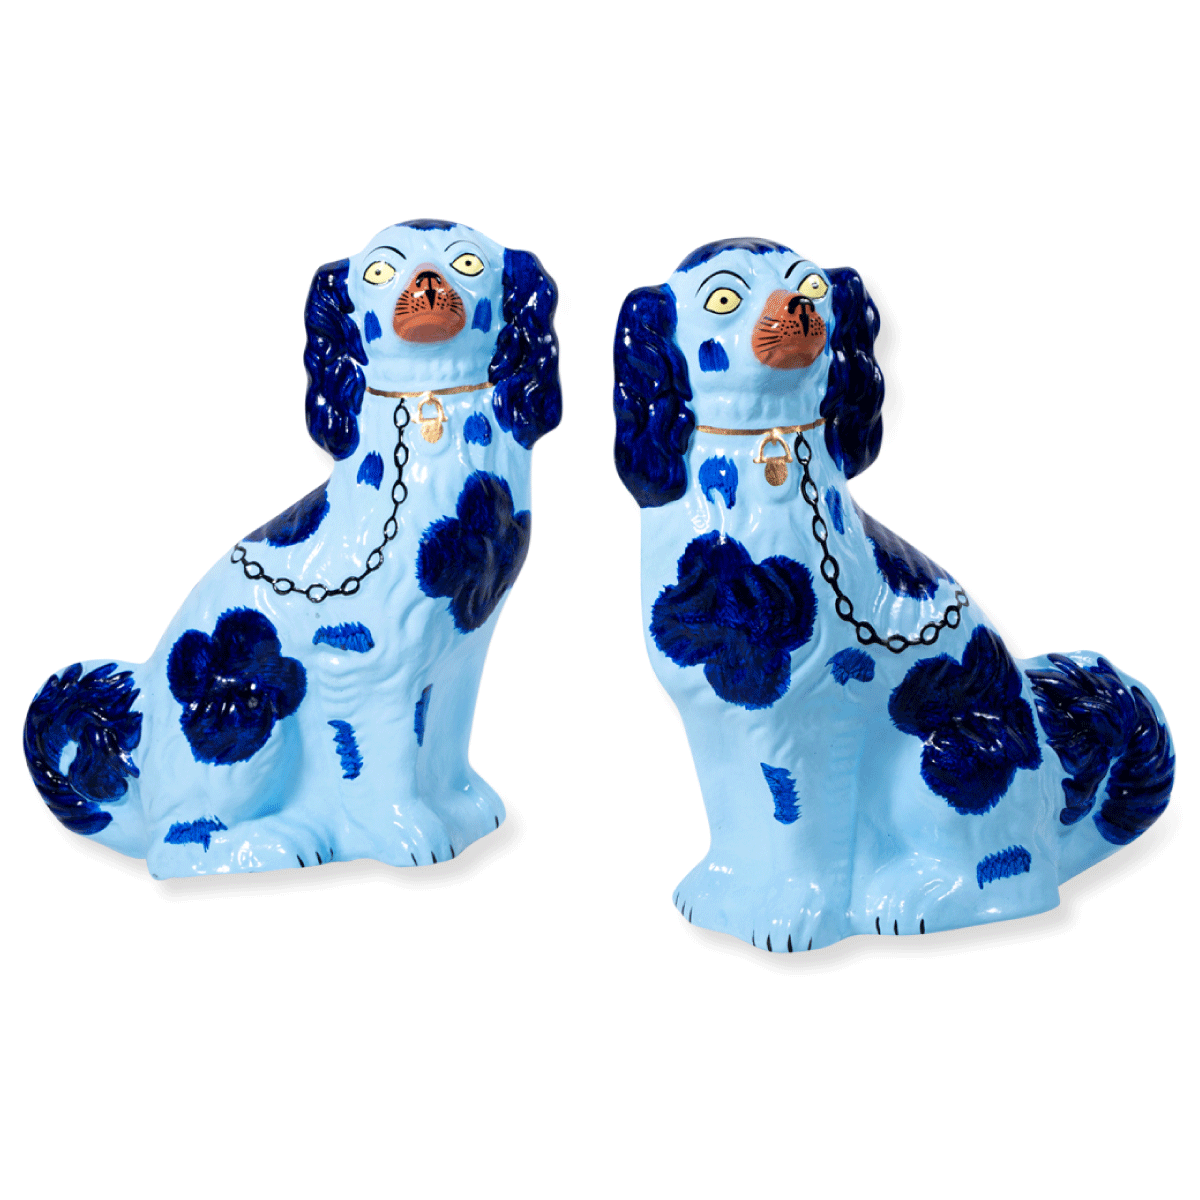 Furbish Studio - Staffordshire Dog Pair of Christmas Ornaments in Blue